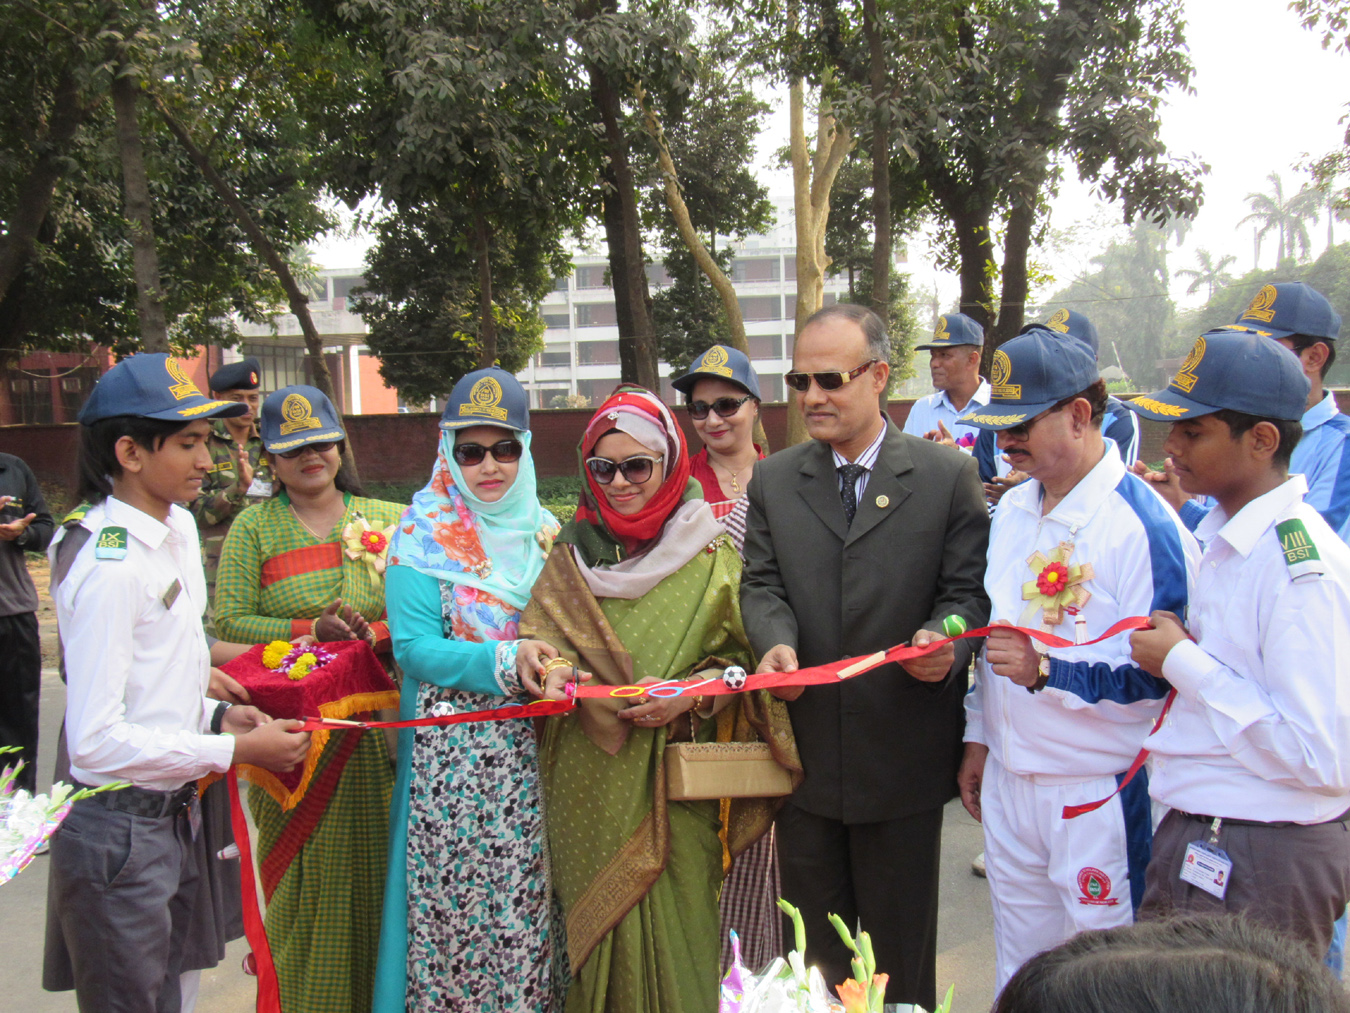 Brigadier General Khondoker Md Mozammel Haque, Commandant COD,  Dhaka Cantonment and  Chairman of  the Governing Body of  BSI and his better half Mst. Rowshan Ara Khondoker inaugurating the Inter House Annual Sports Competition- 2018  of  Baridhara Scholars' Institution (BSI) at Military Wing  Training Ground, COD, Dhaka Cantonment on Saturday.